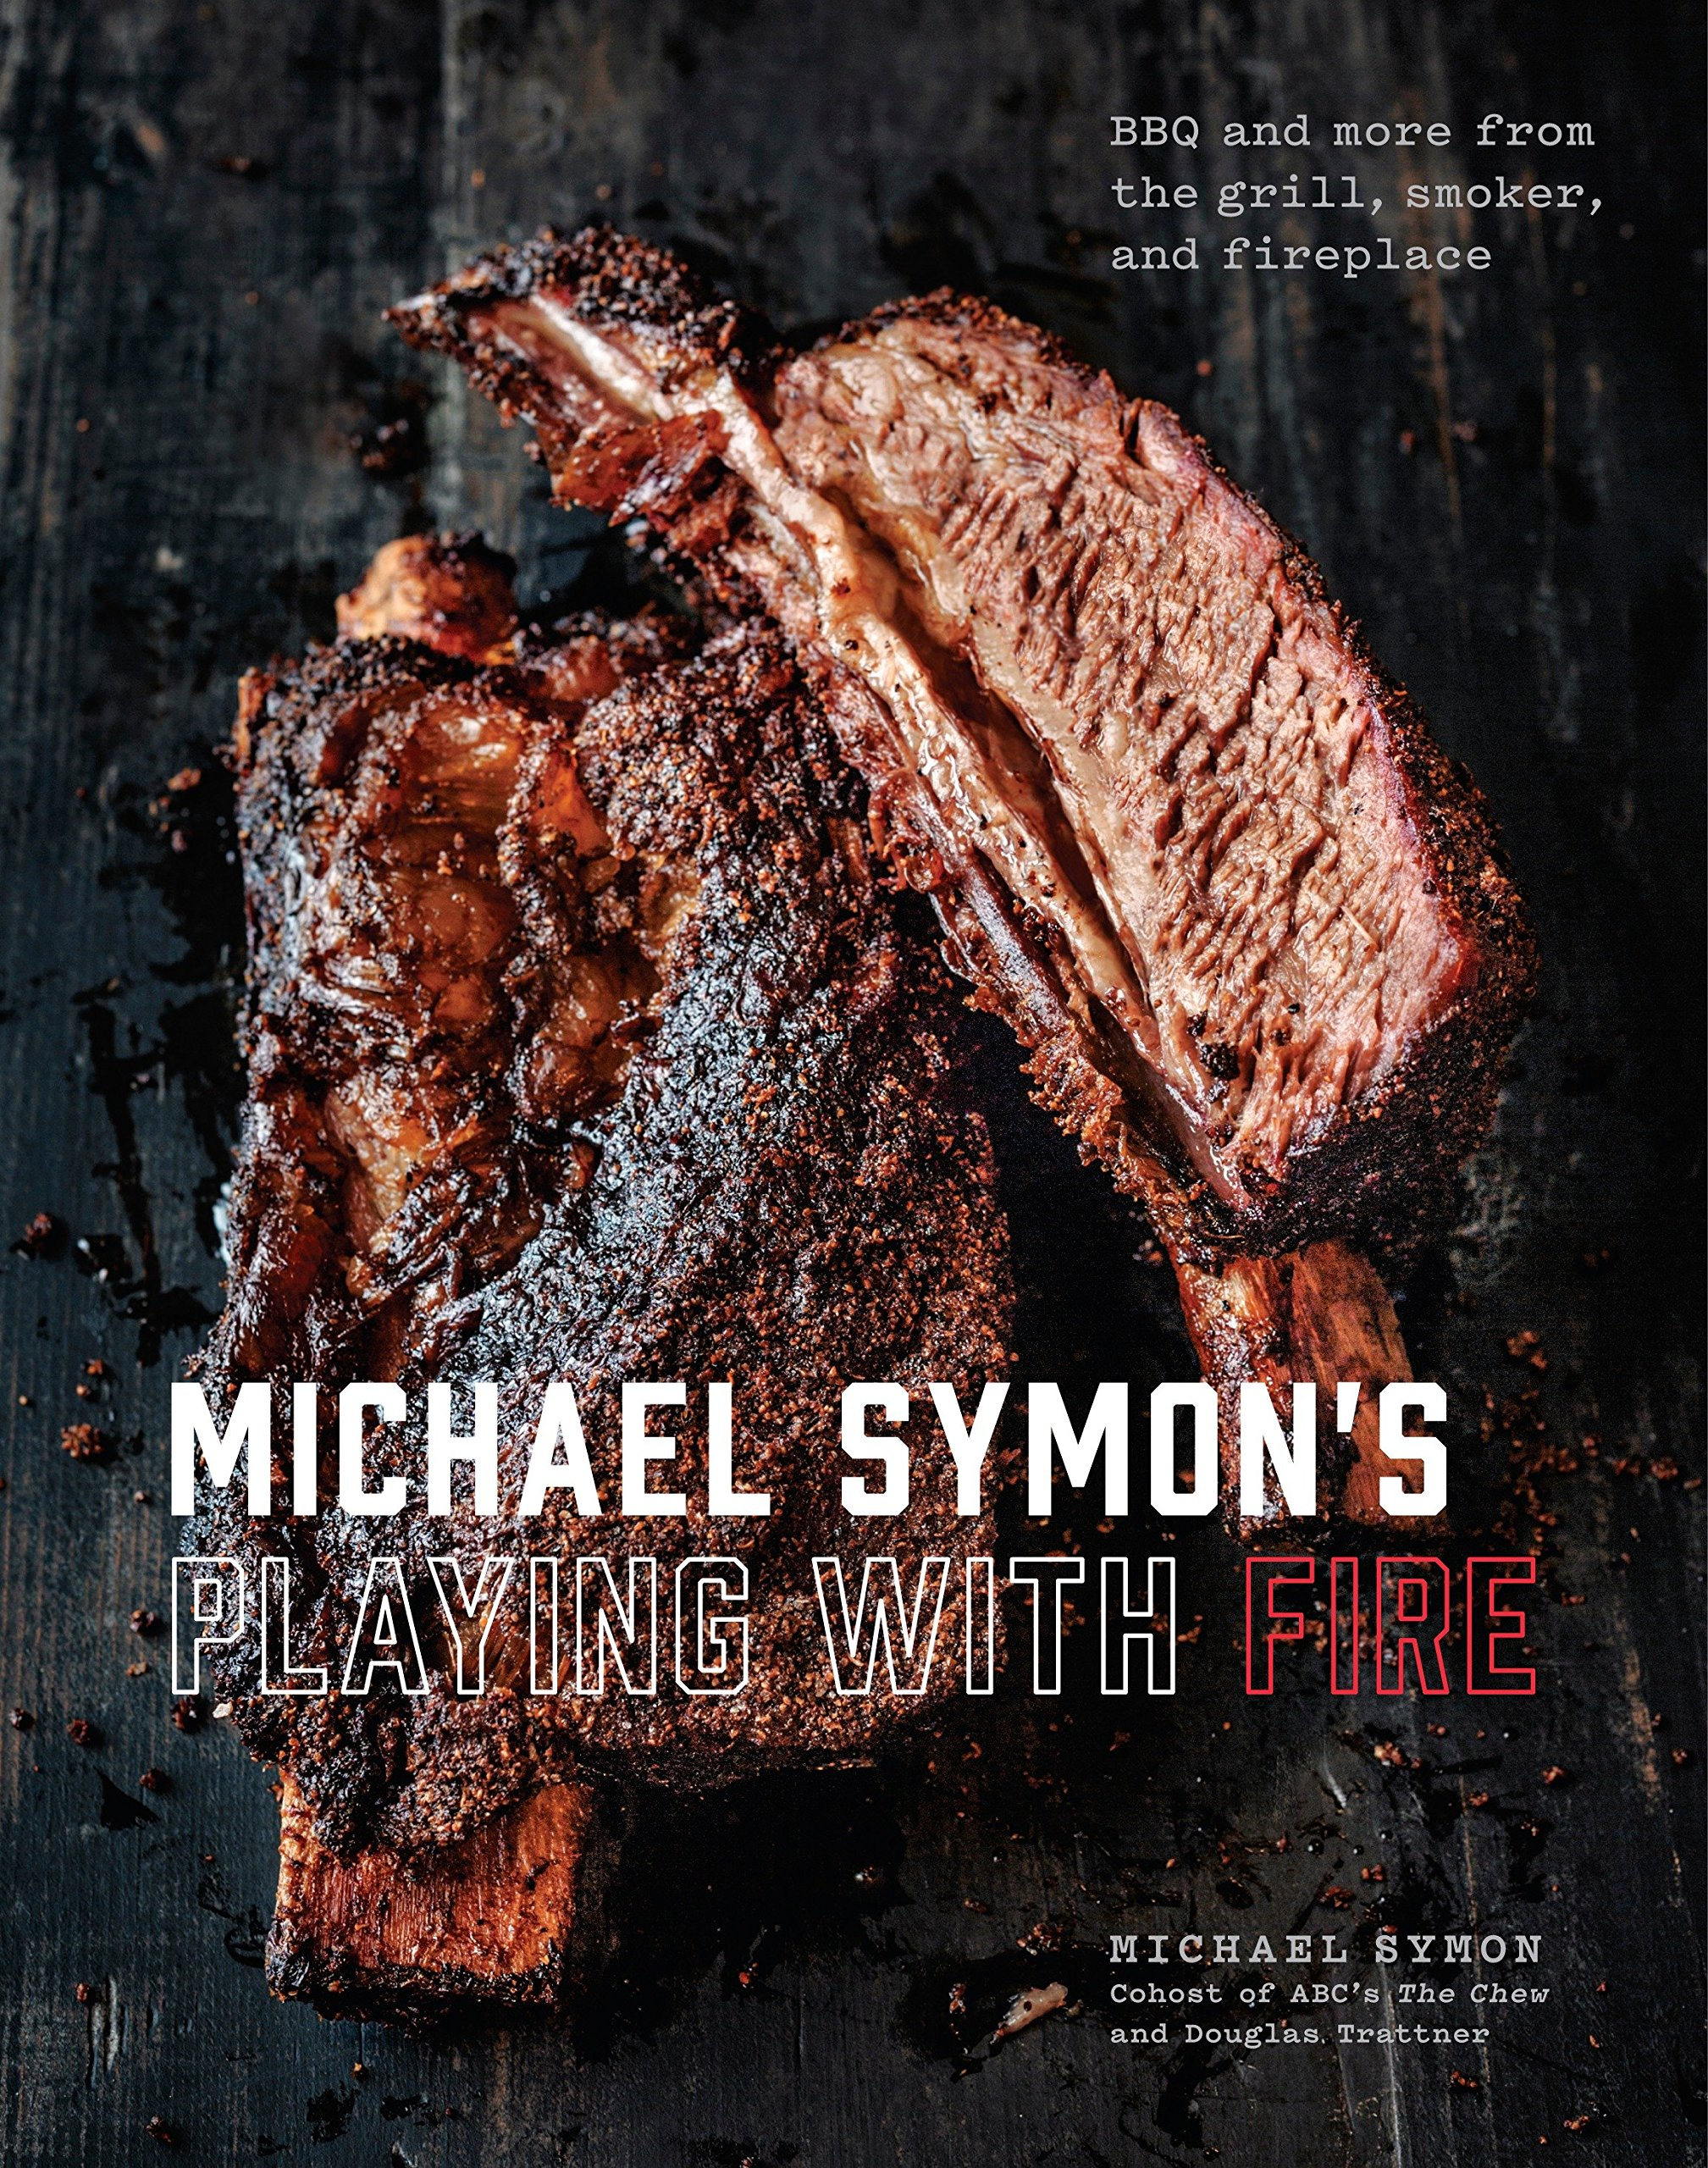 Michael Symon's Playing with Fire: BBQ and More from the Grill, Smoker, and Fireplace: A Cookbook by Clarkson Potter